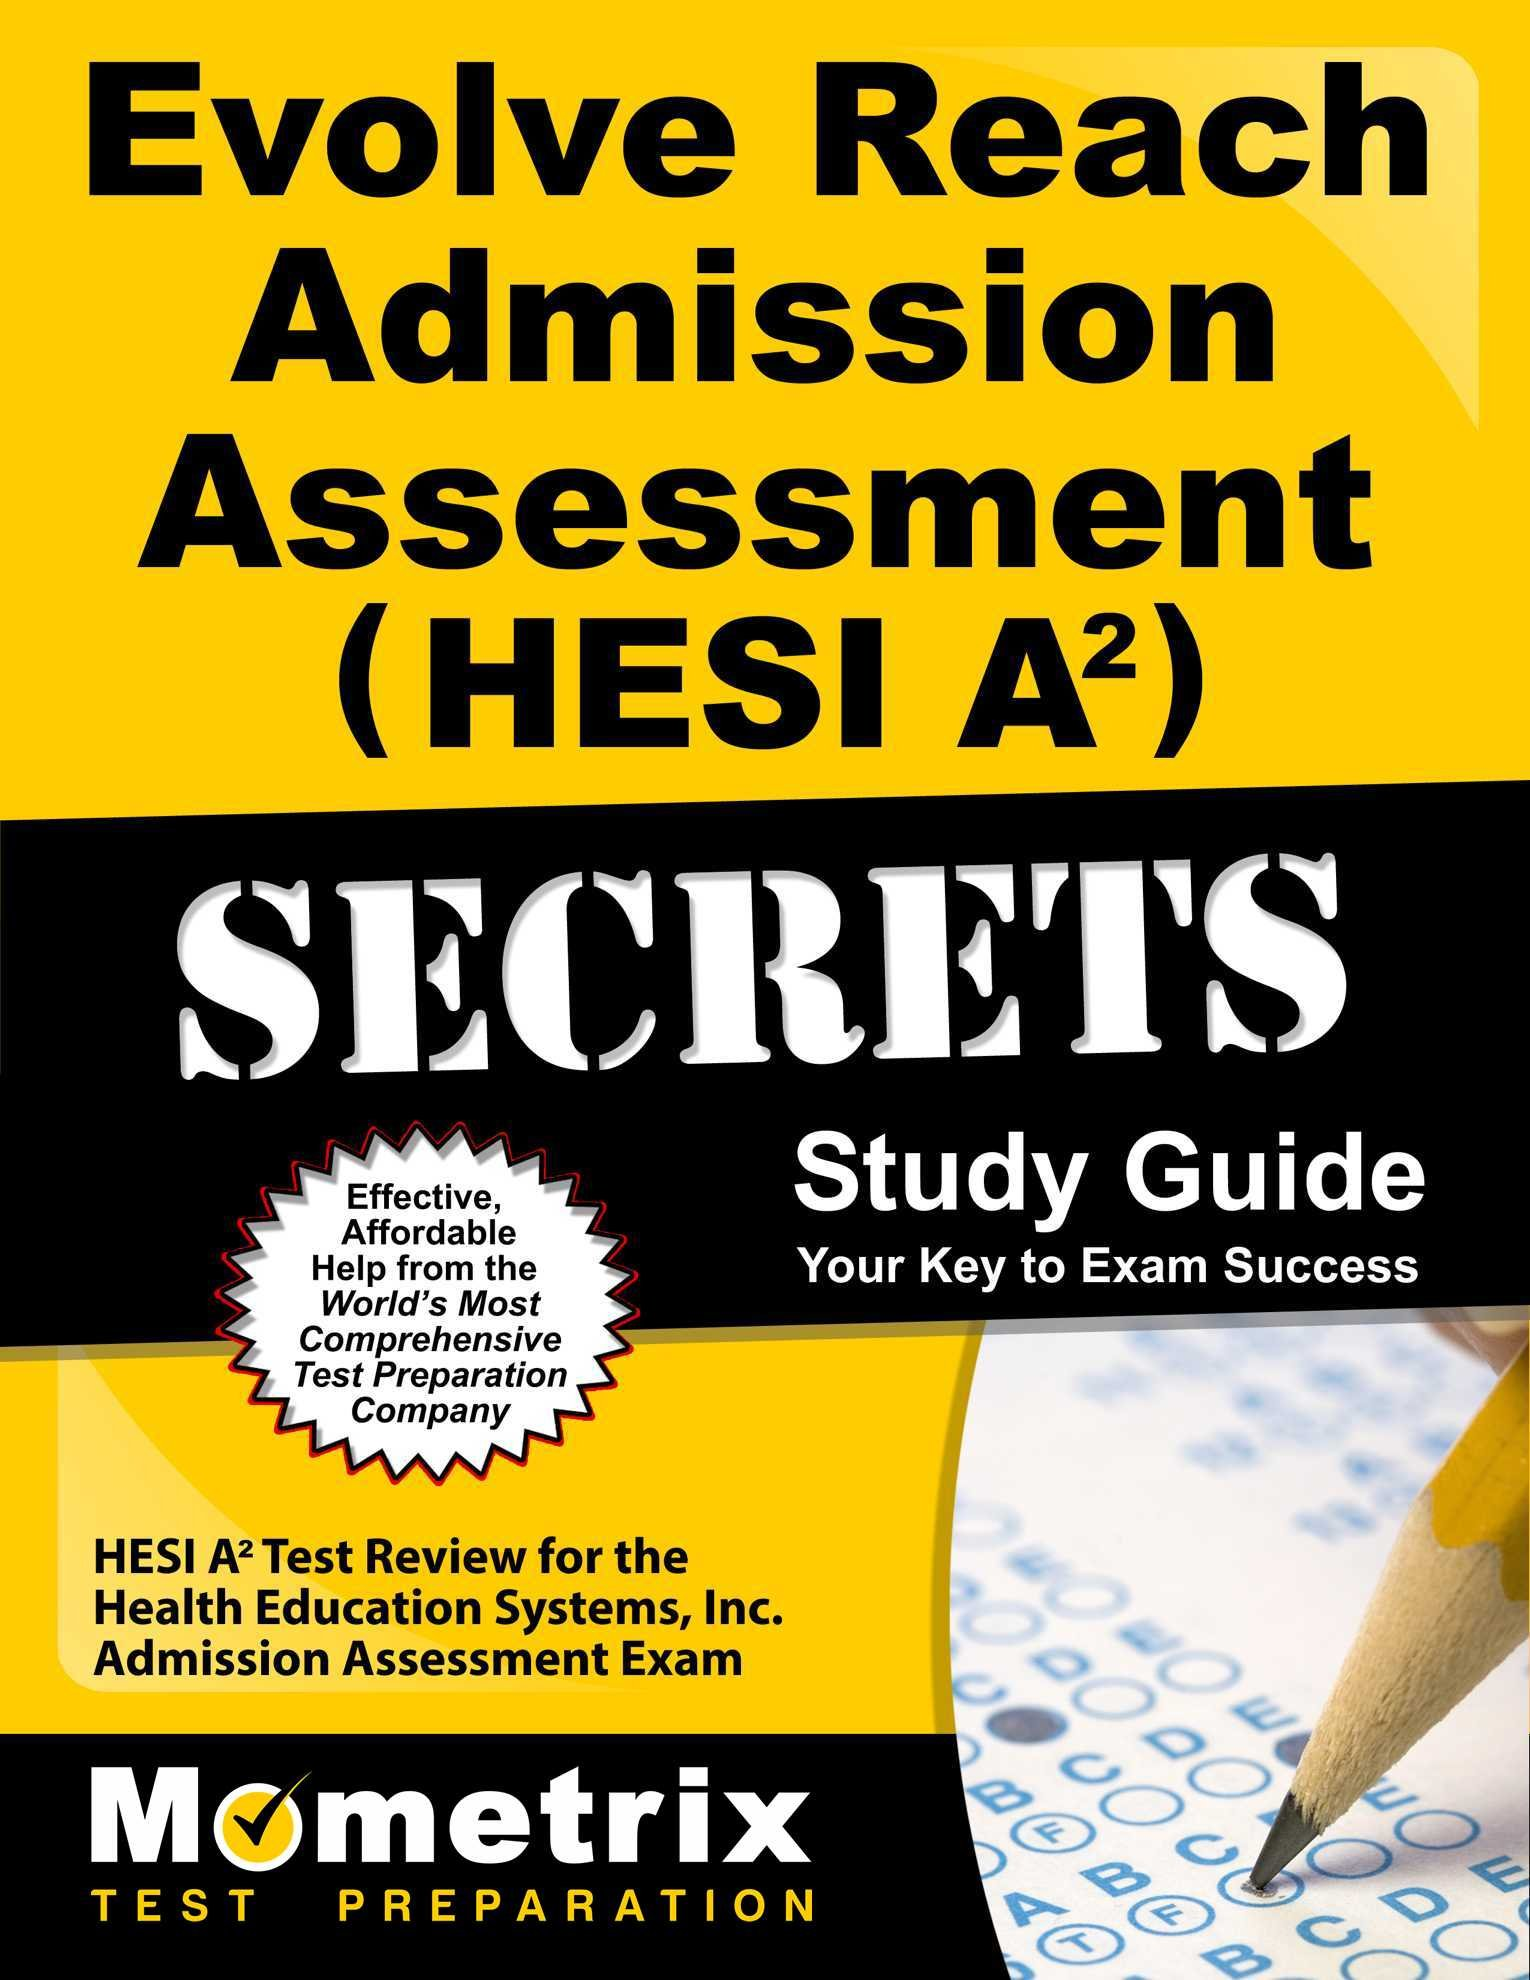 Awesome Hesi A2 Anatomy And Physiology Study Guide Gift - Human ...